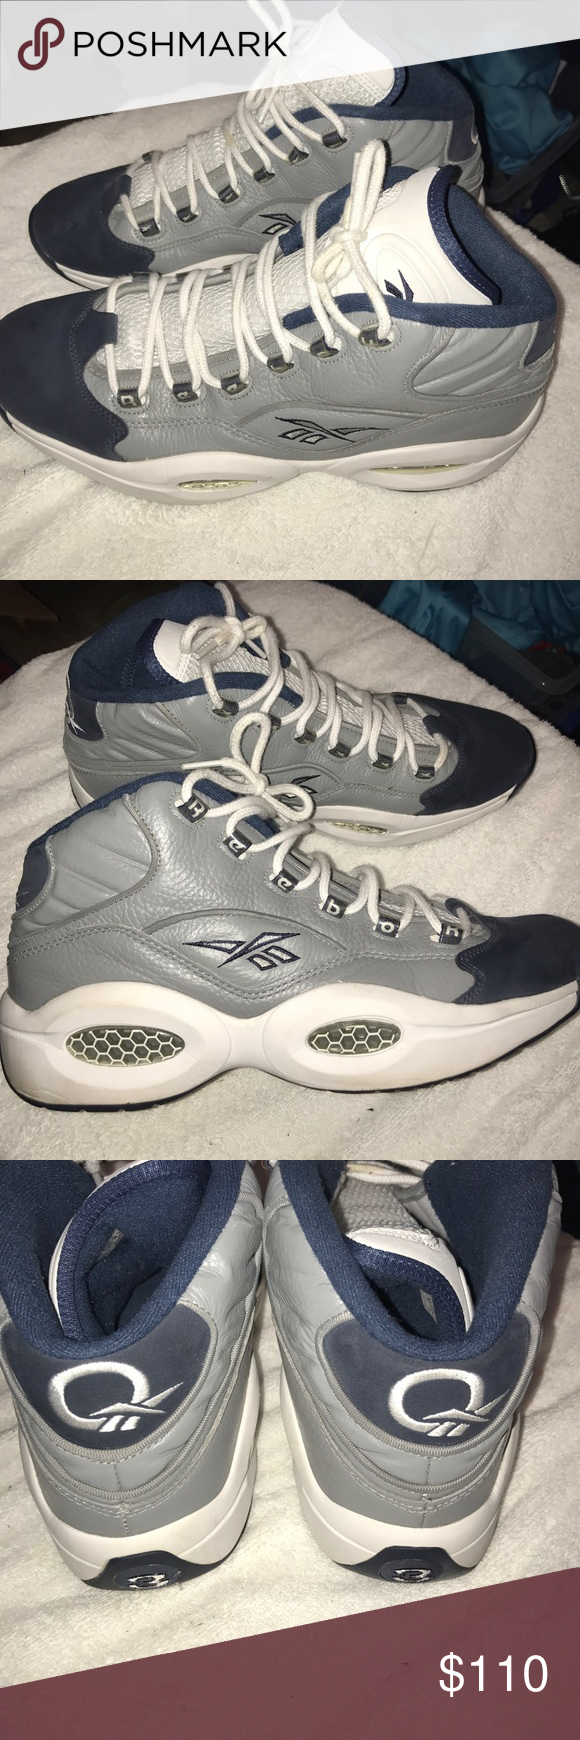 439c71c5699d Reebok Answer Georgetowns Allen Iverson s signature Reebok Answer shoe in  the Georgetown colorway. Men s size 12. Really good condition.